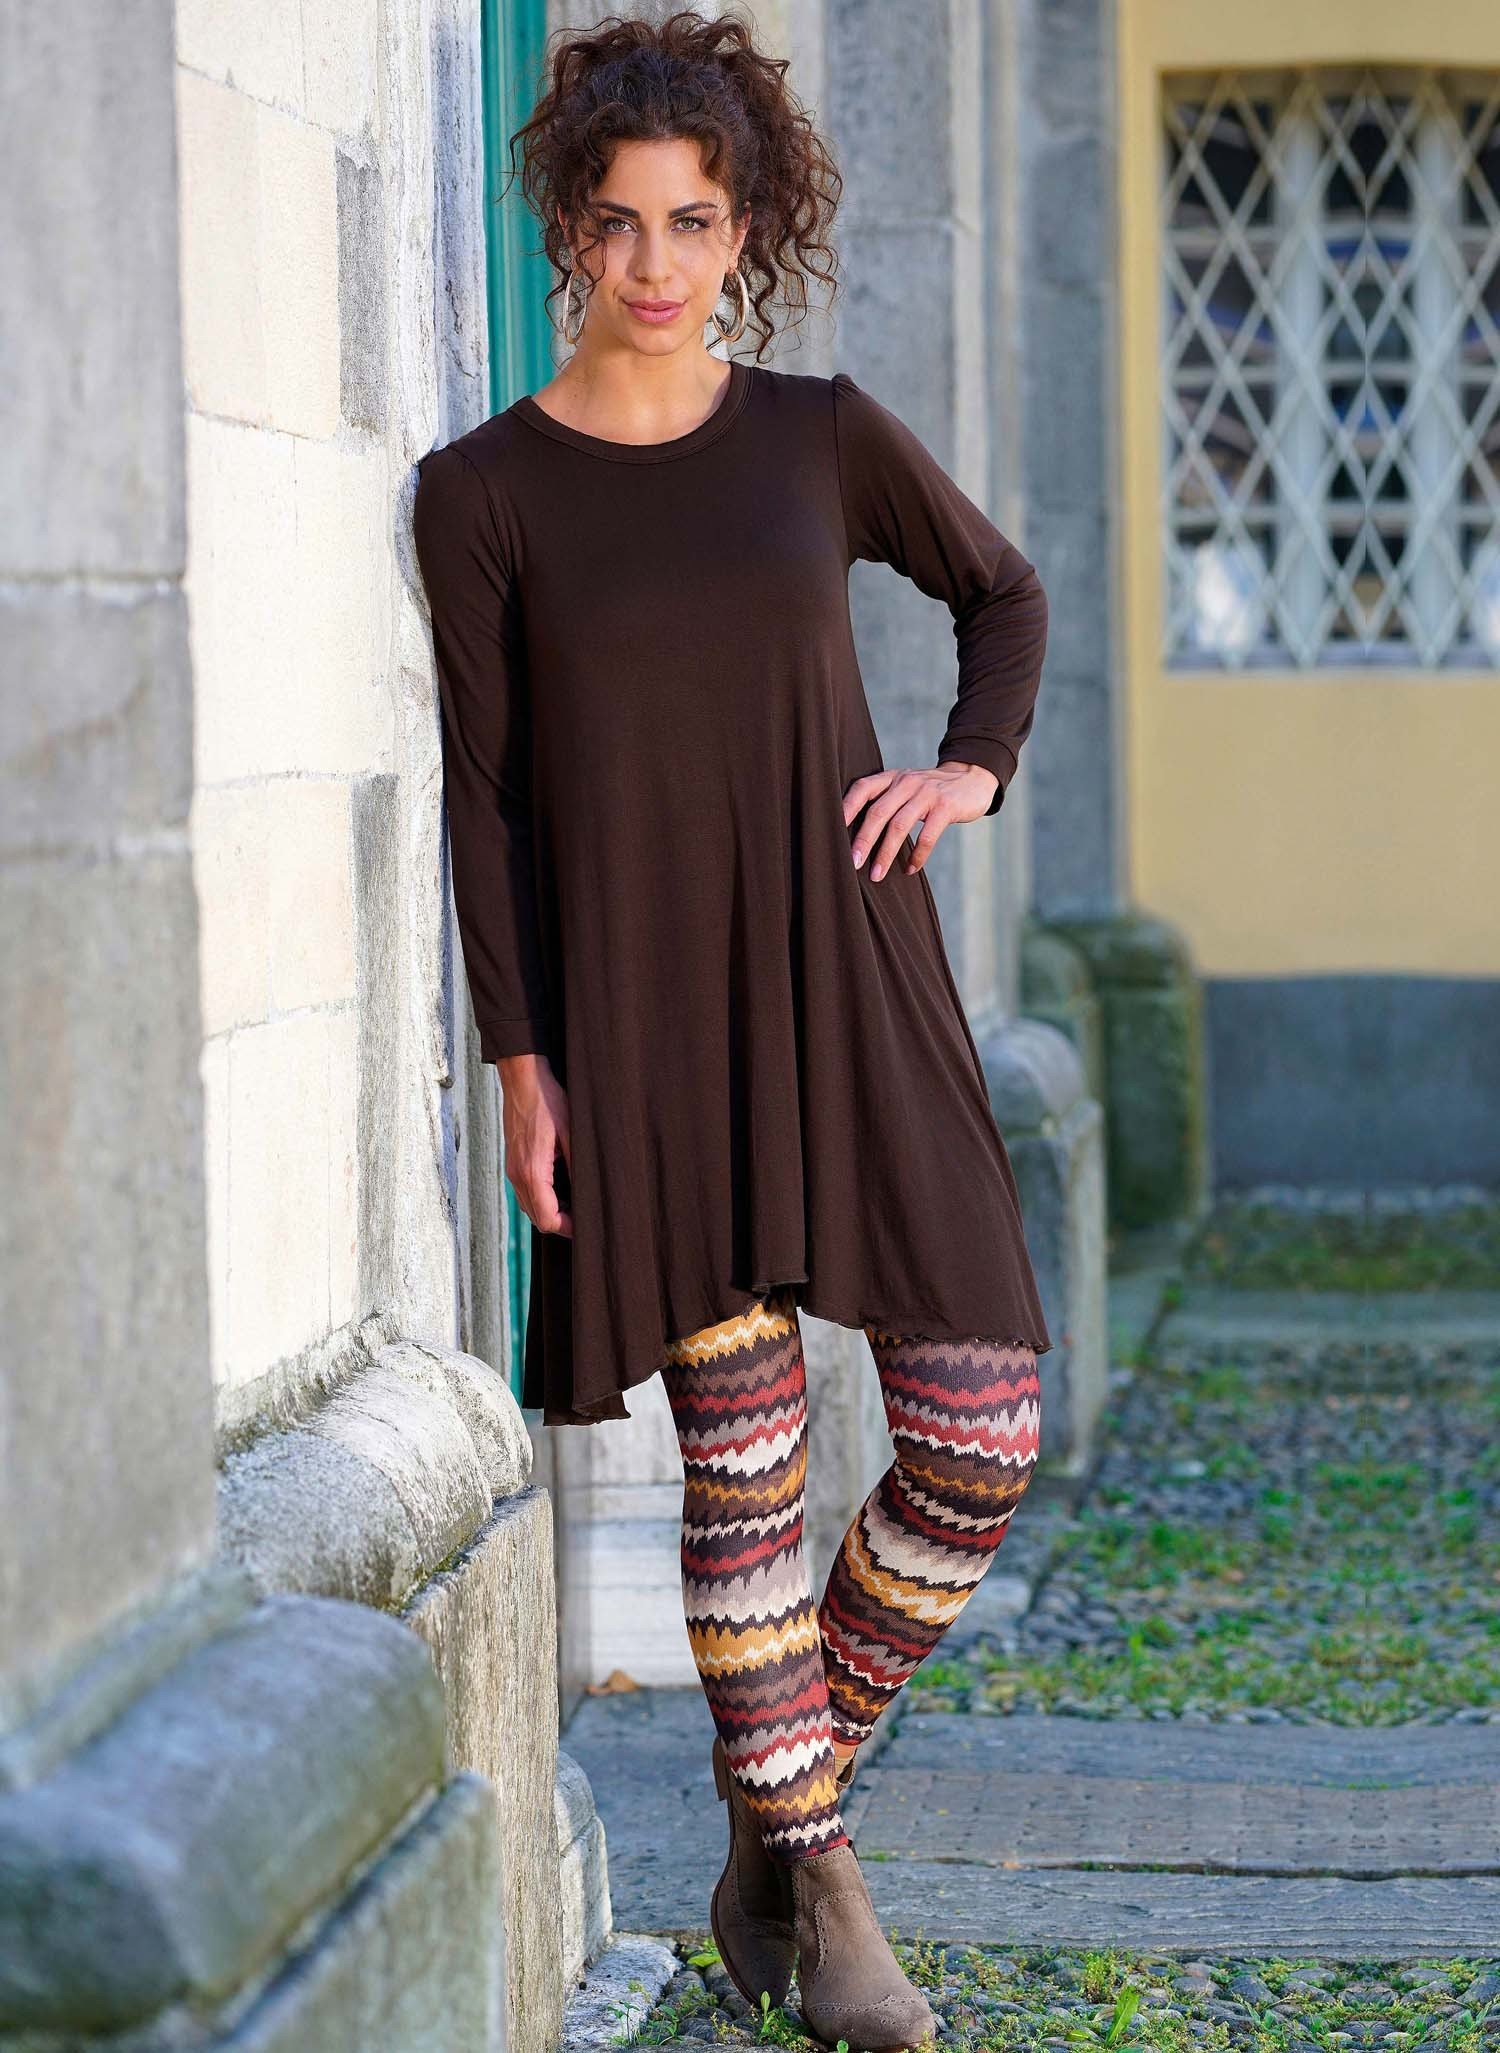 D-Leggings,Colorzack.braun/ock XL 305 - 2 - Ronja.ch